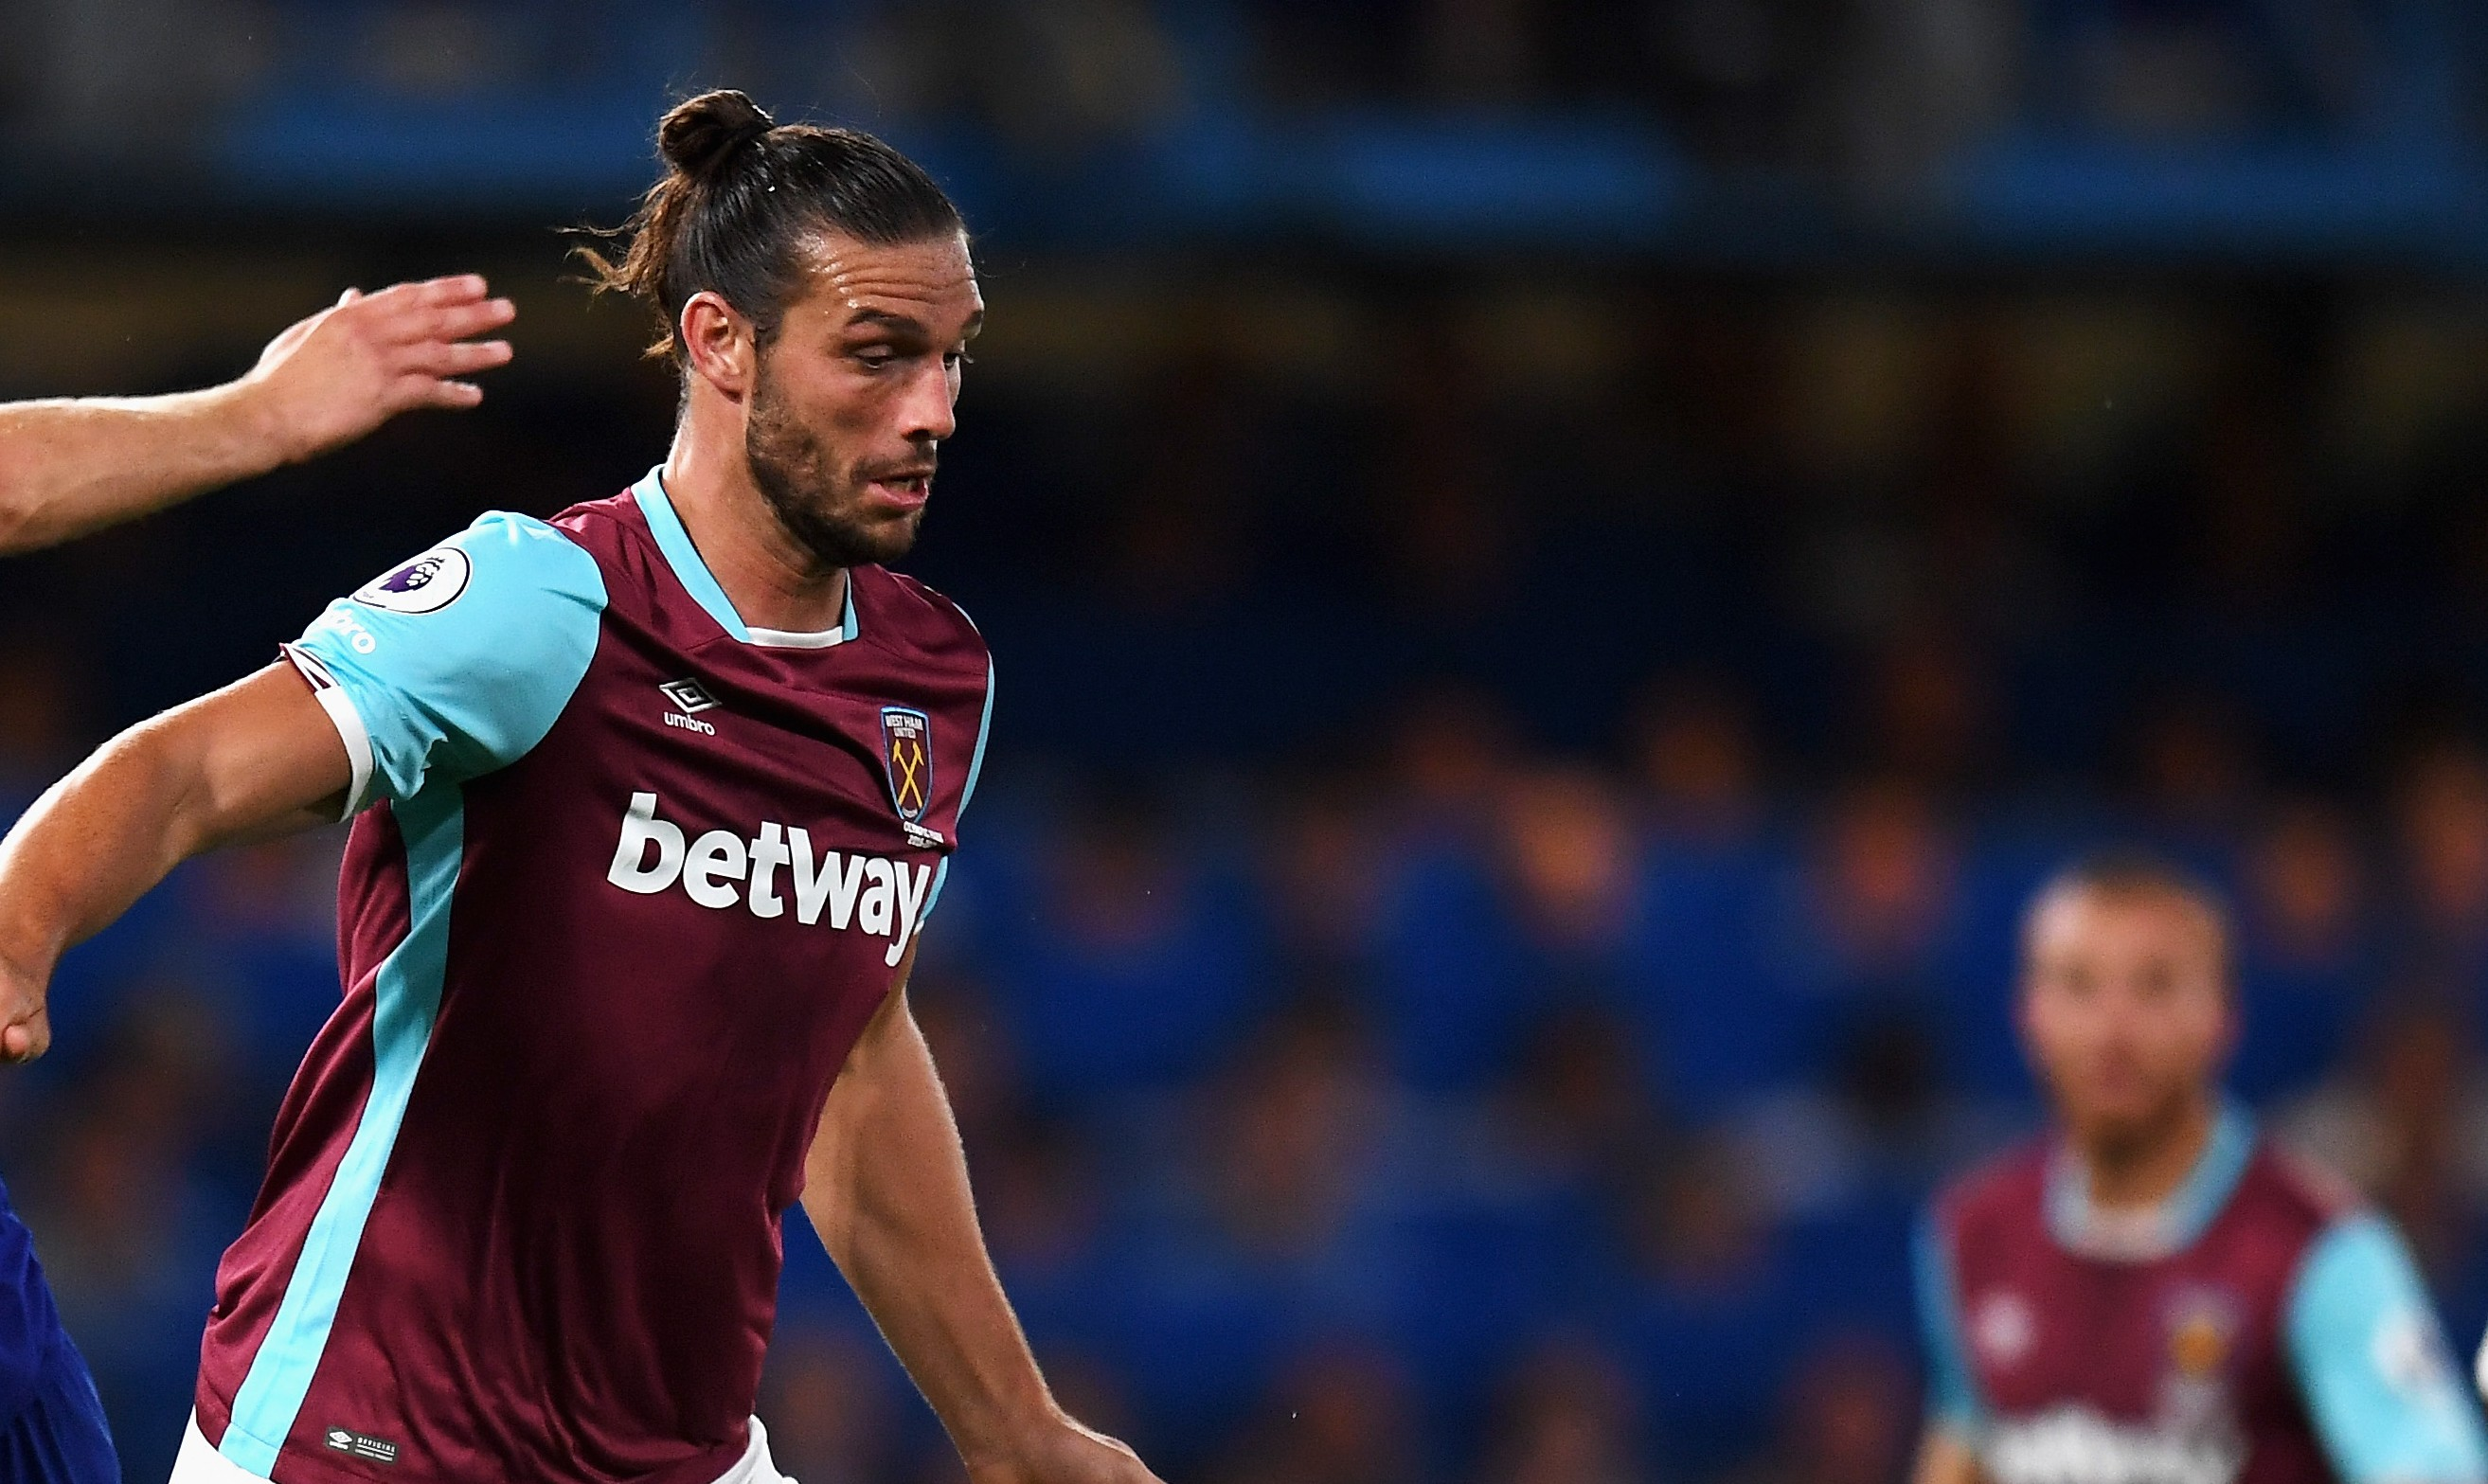 LONDON, ENGLAND - AUGUST 15: Gary Cahill of Chelsea challenges Andy Carroll of West Ham United during the Premier League match between Chelsea and West Ham United at Stamford Bridge on August 15, 2016 in London, England. (Photo by Mike Hewitt/Getty Images)